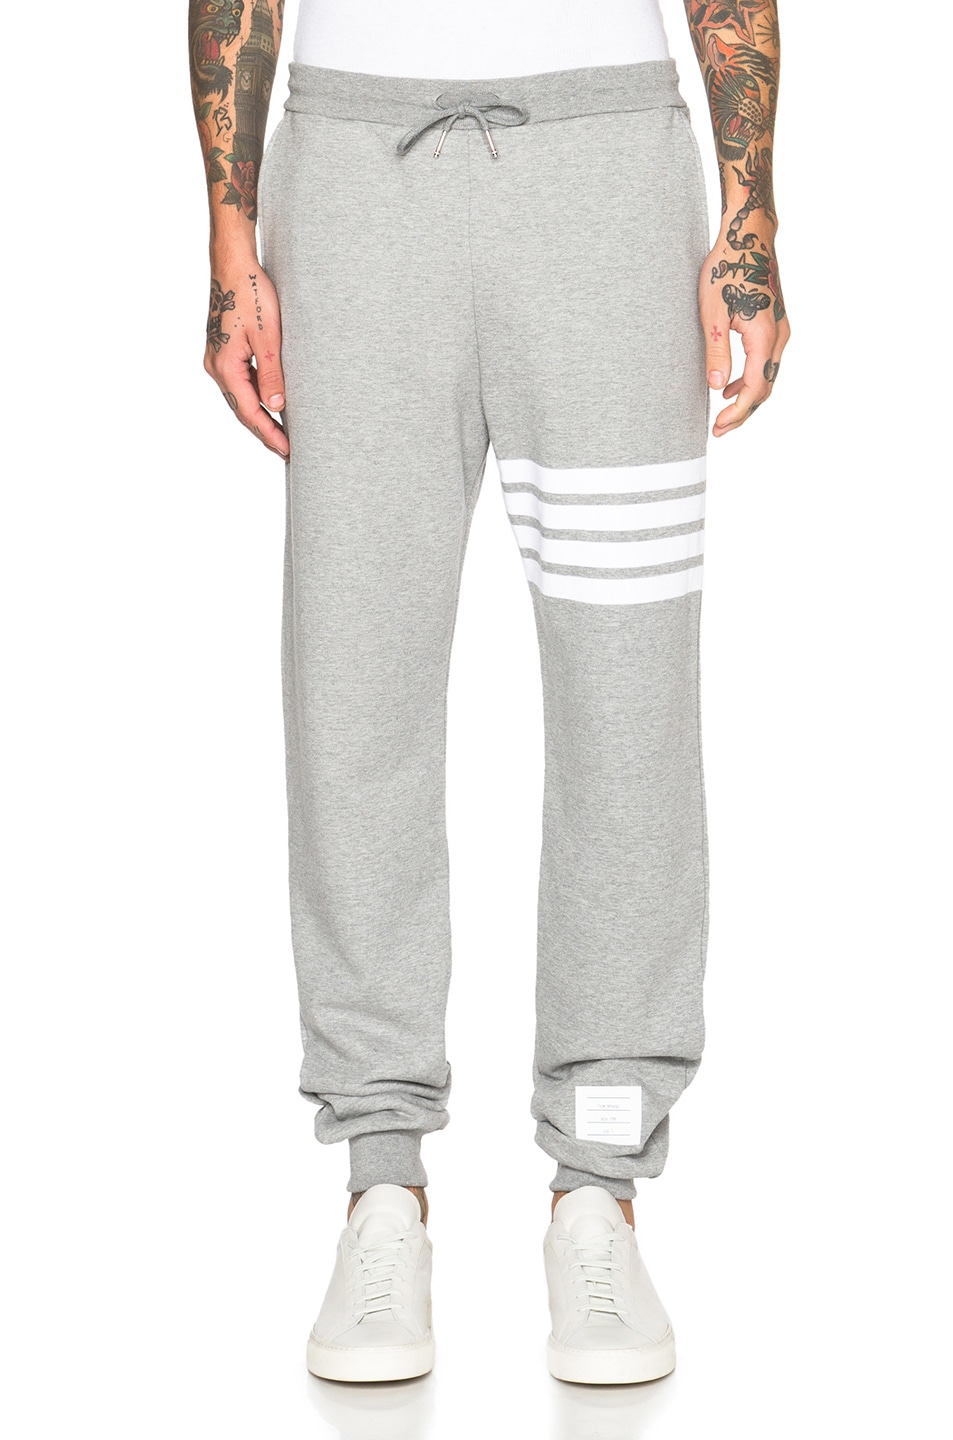 Classic Drawstring Sweatpants With Stripe Detail, Light Gray/Optic White, Light Heather Grey